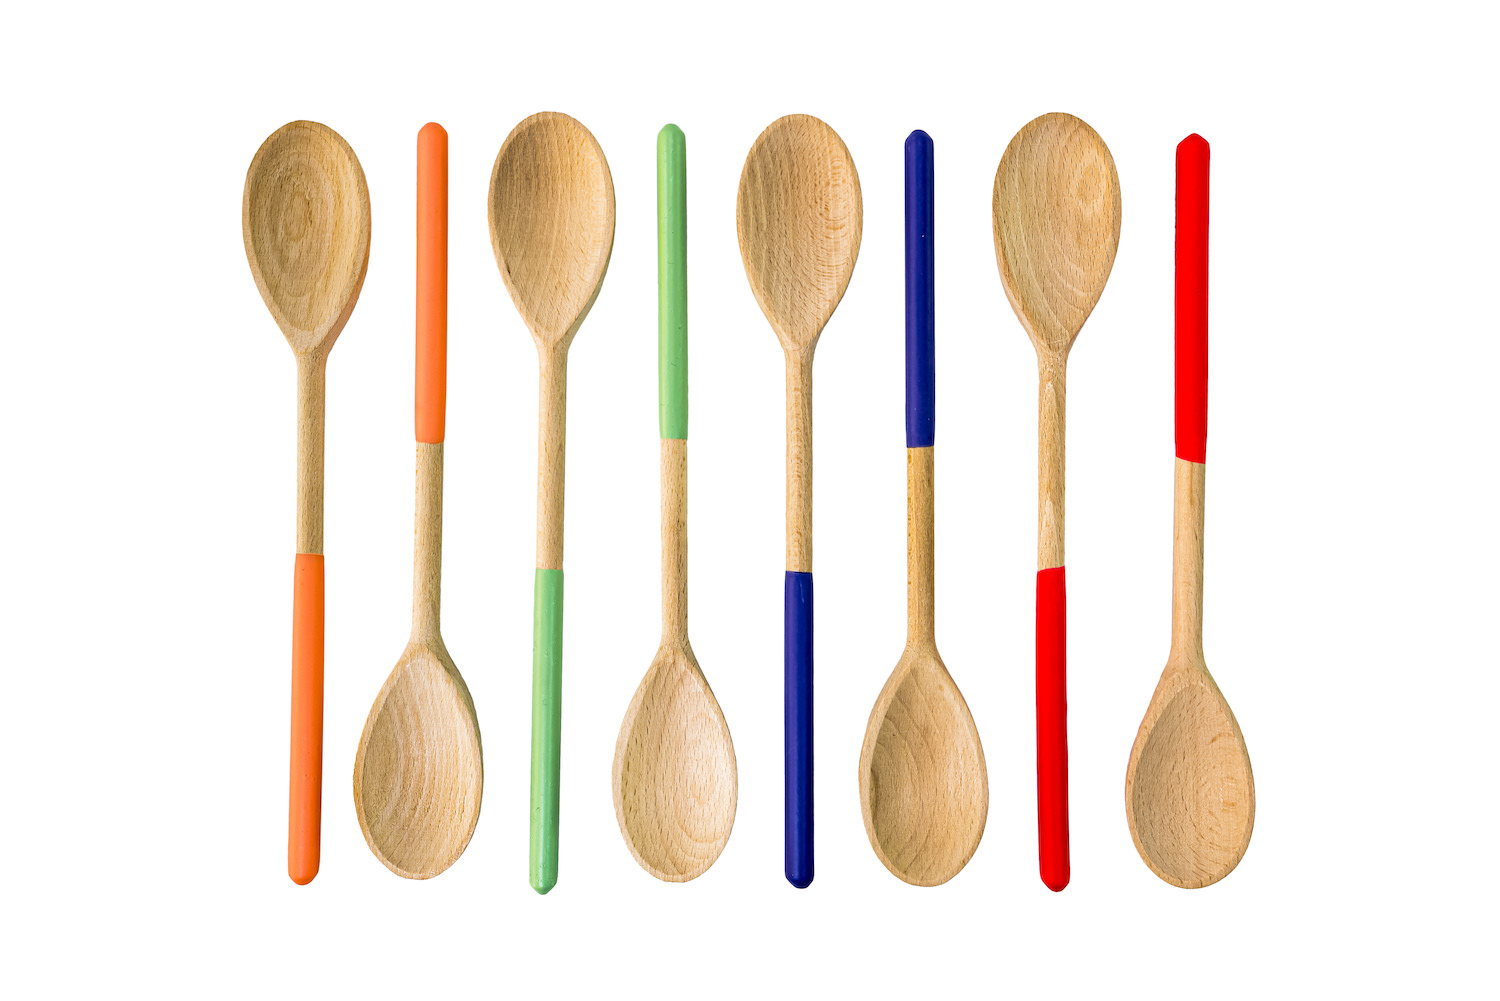 Commercial, Kitchen Products, Spoons